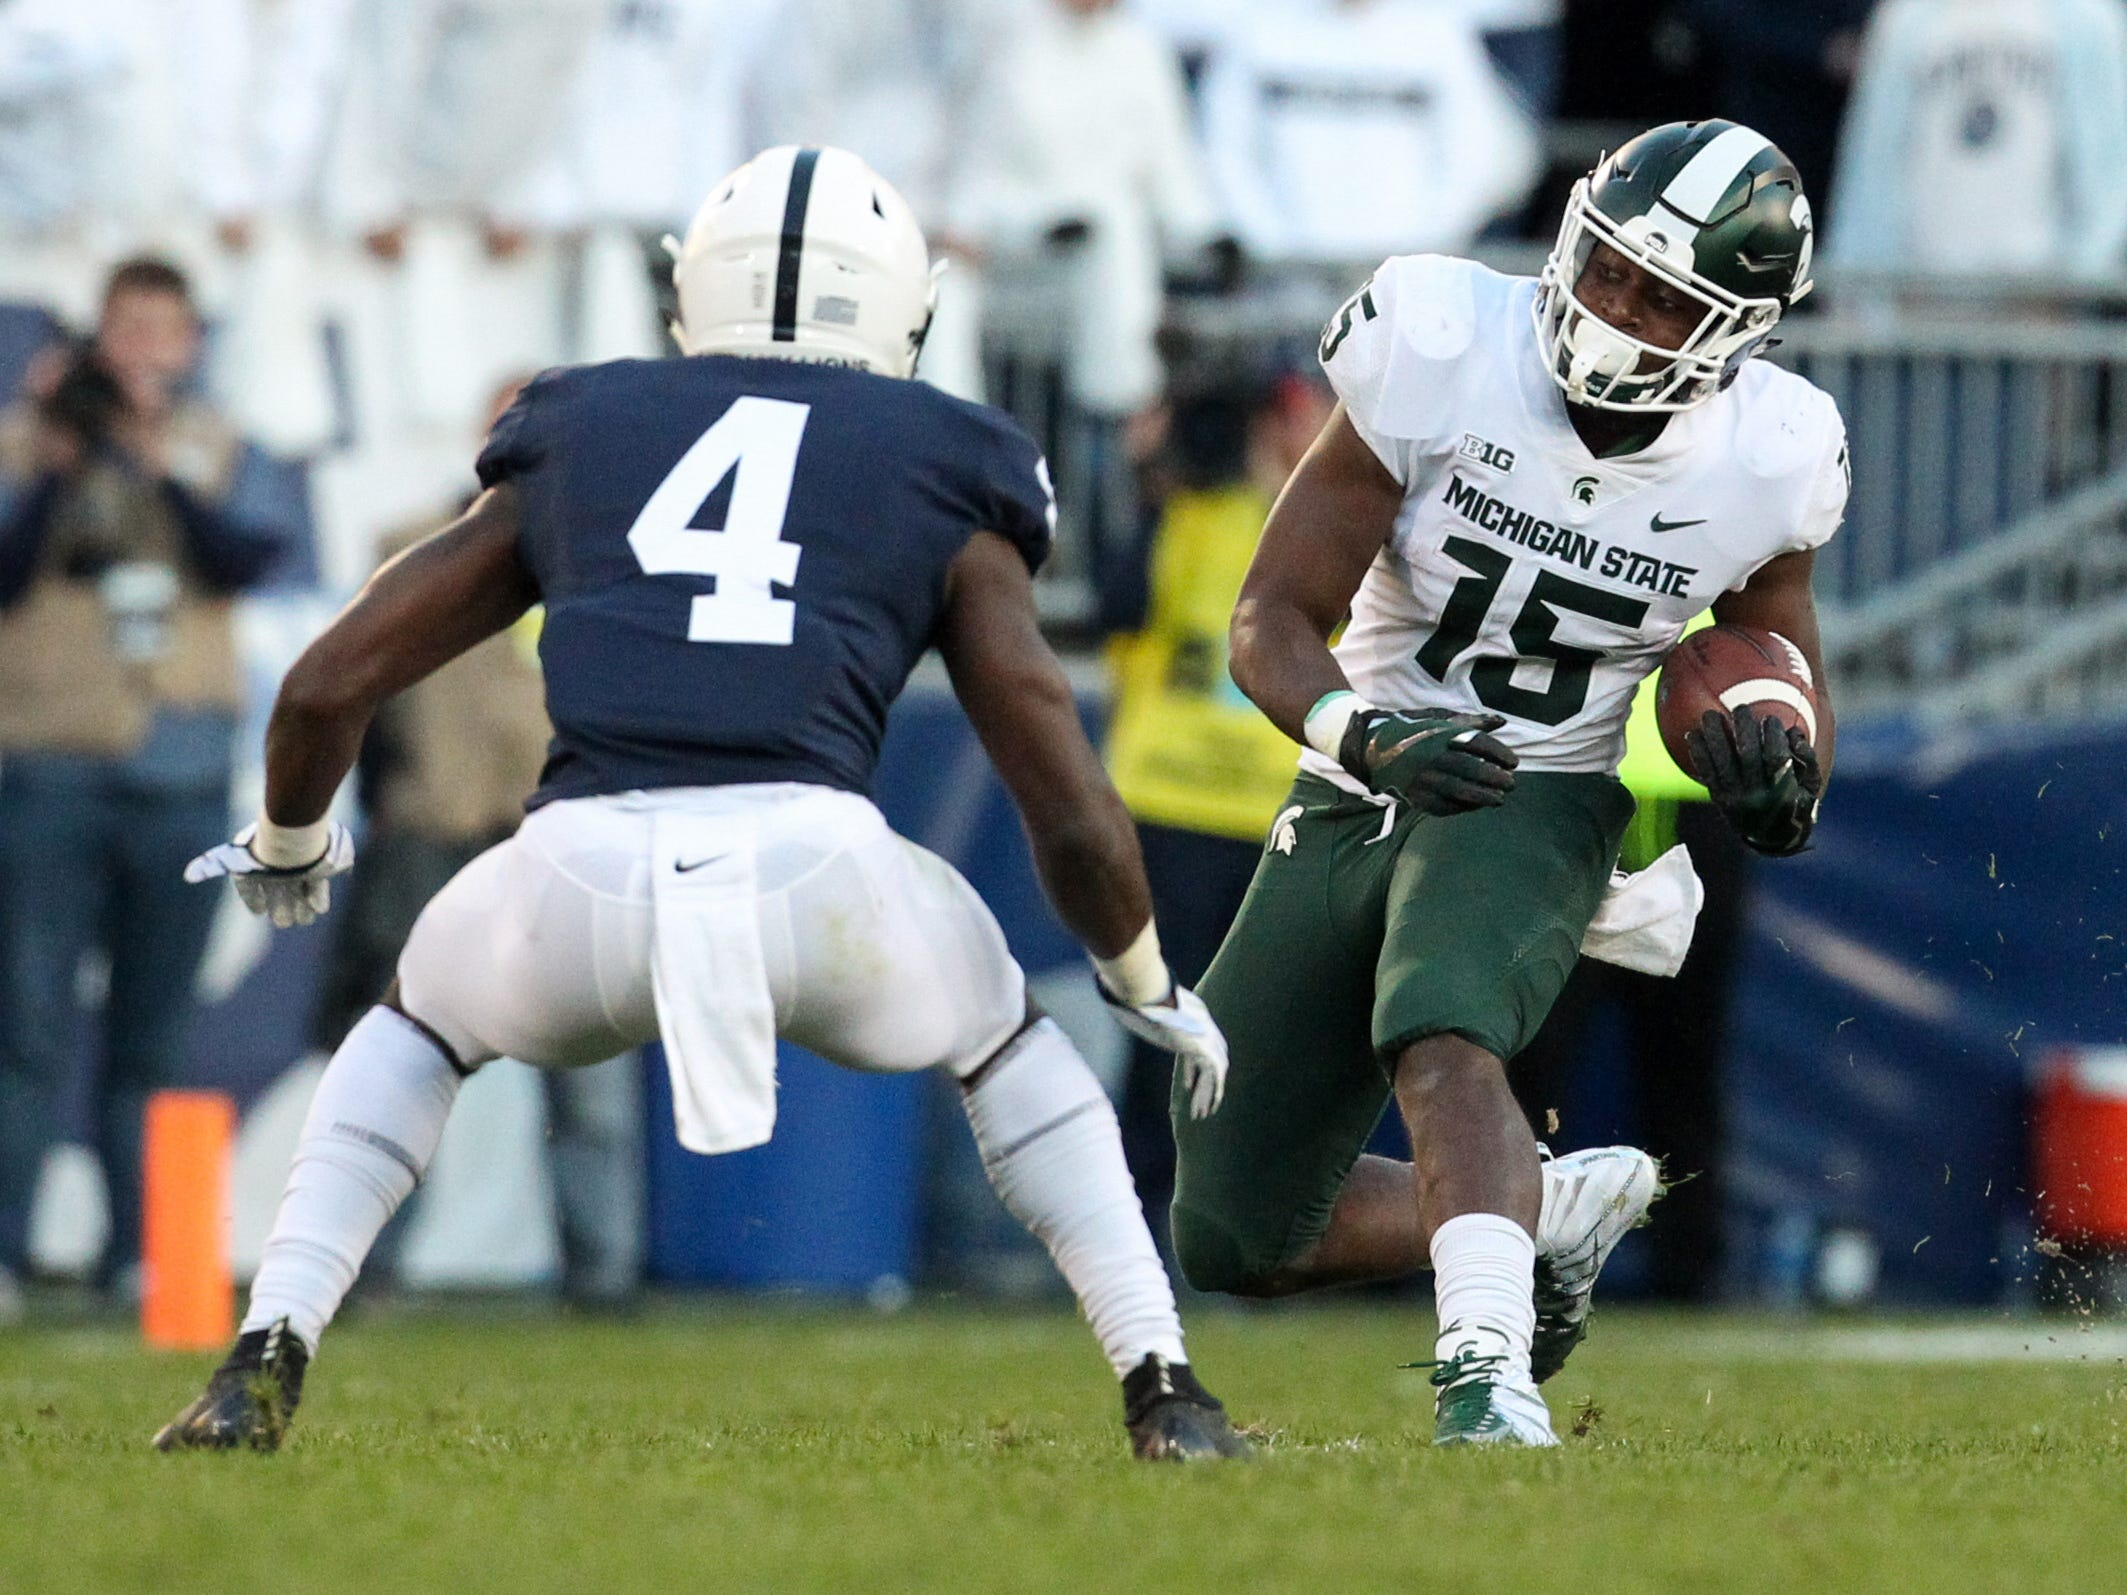 Michigan State Spartans running back La'Darius Jefferson (15) runs with the ball as Penn State Nittany Lions safety Nick Scott (4) defends during the third quarter at Beaver Stadium. Michigan State defeated Penn State 21-17.